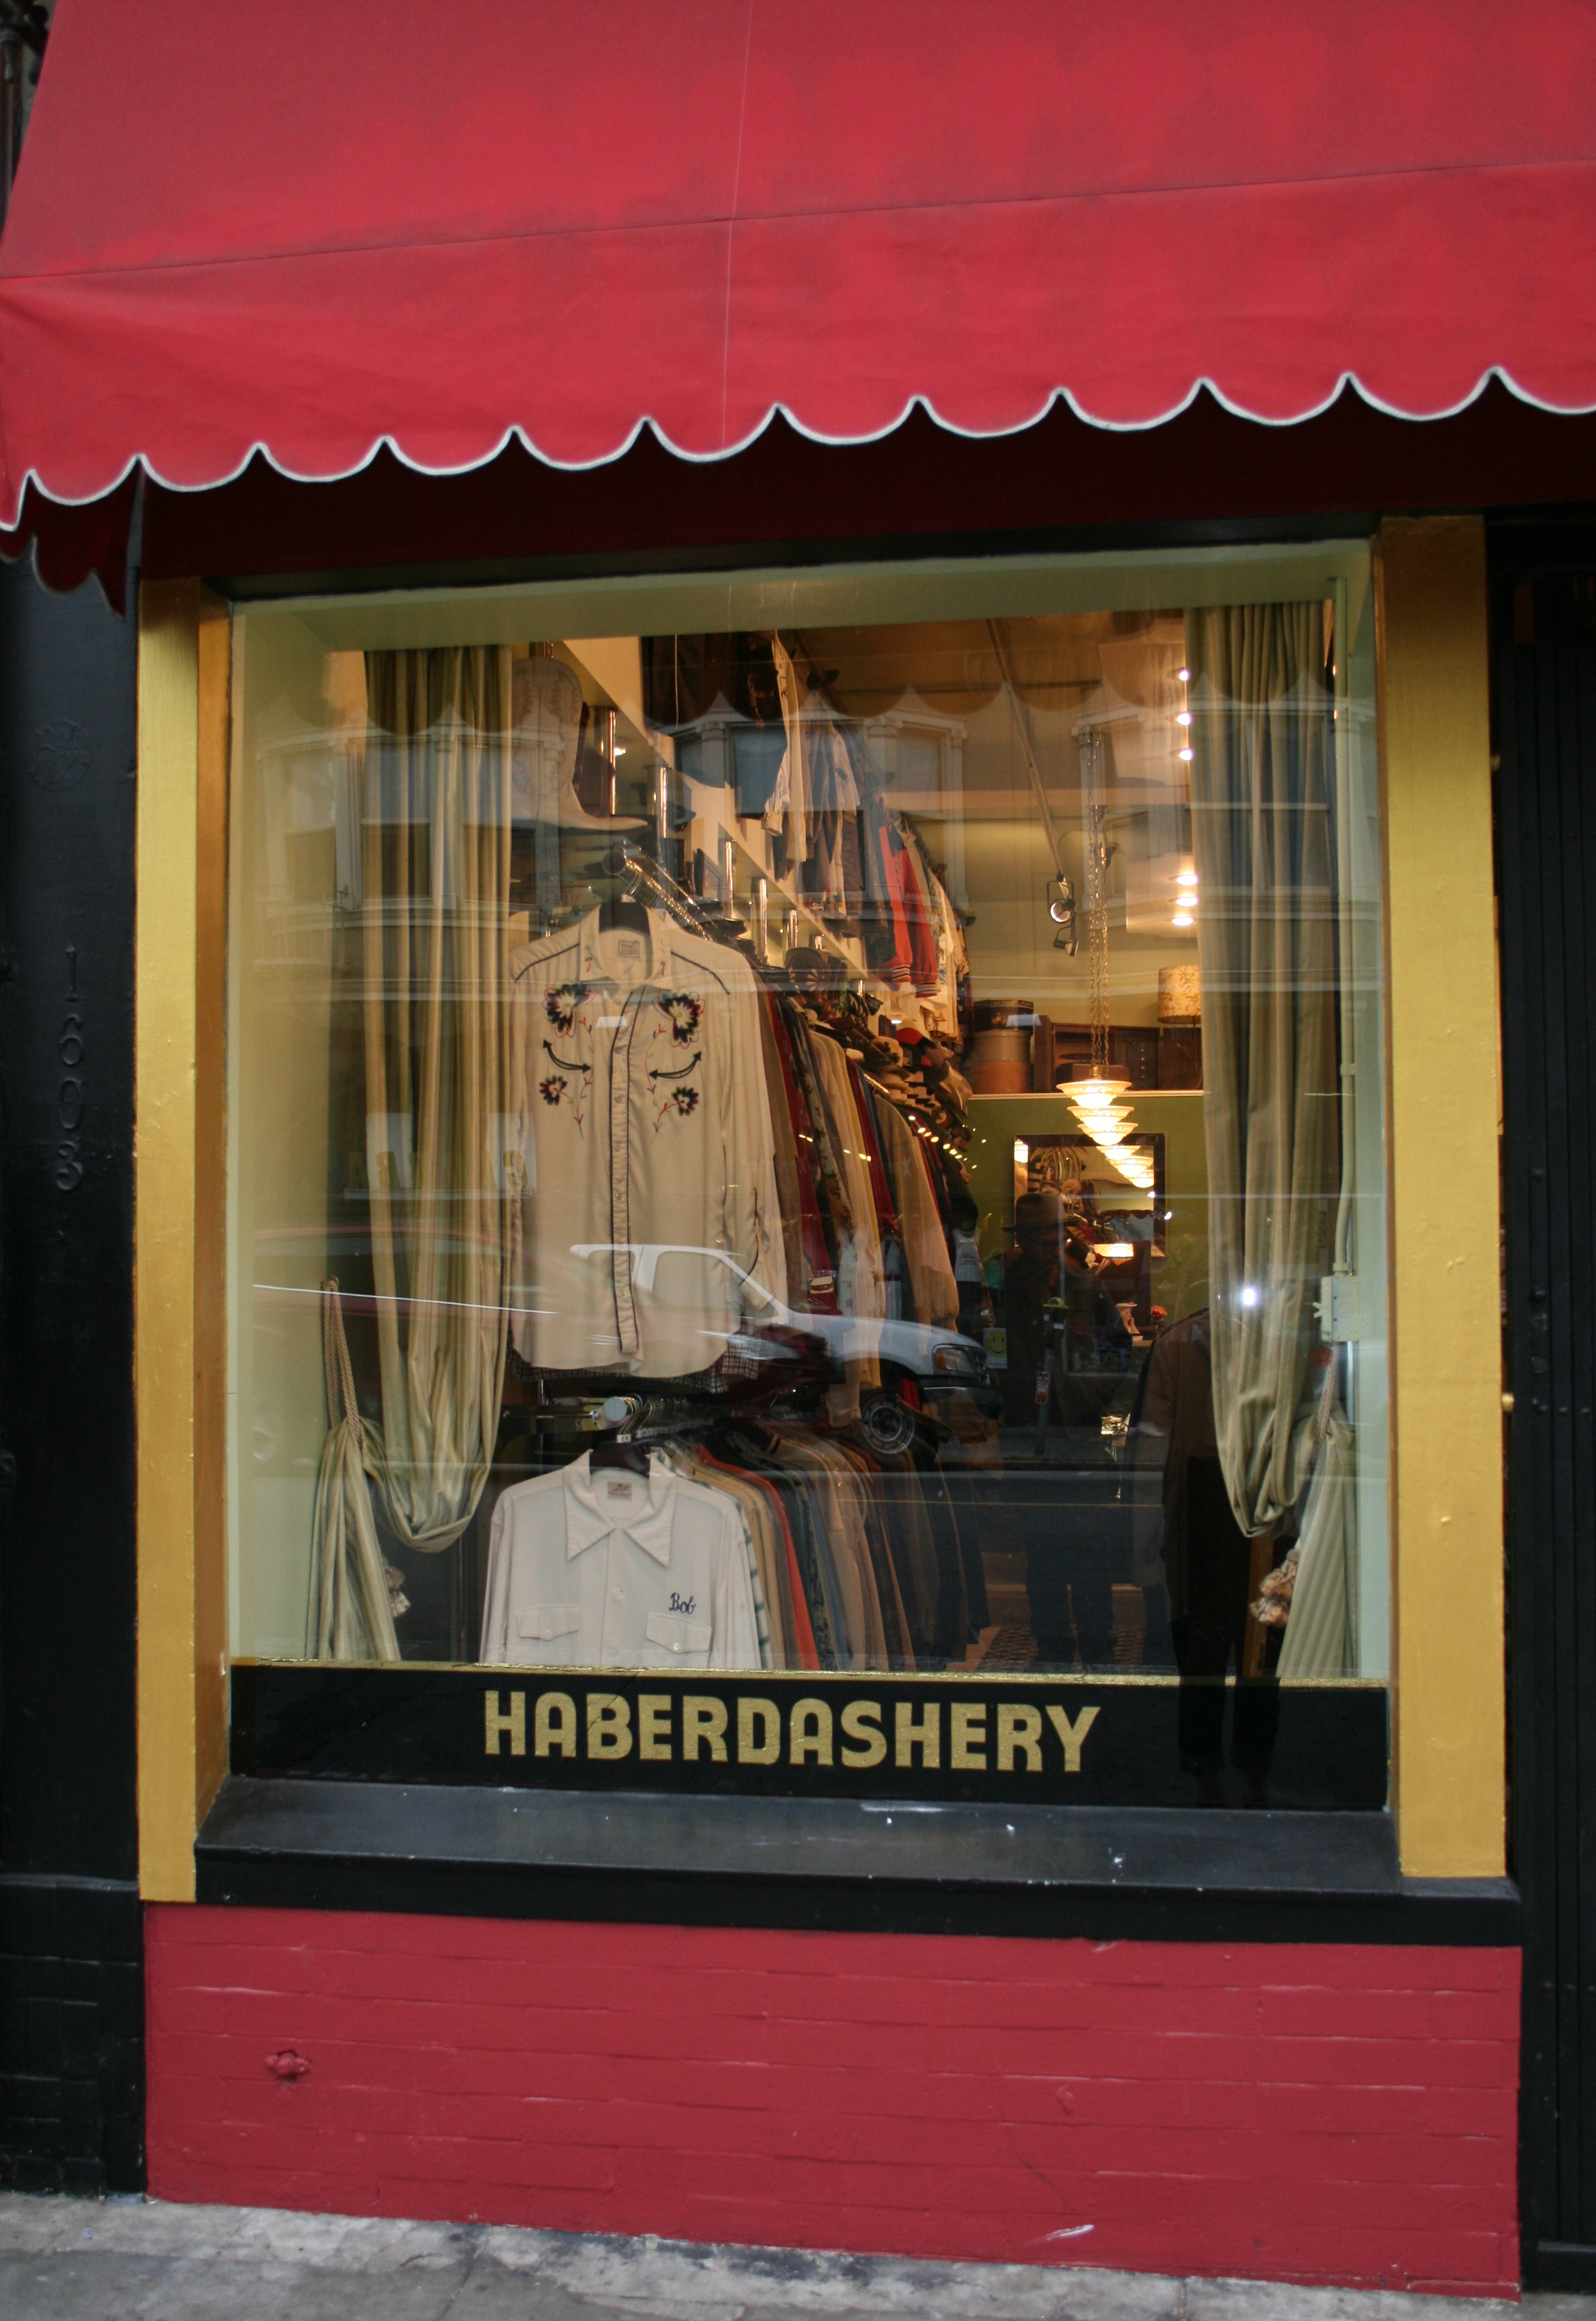 Haberdashery window